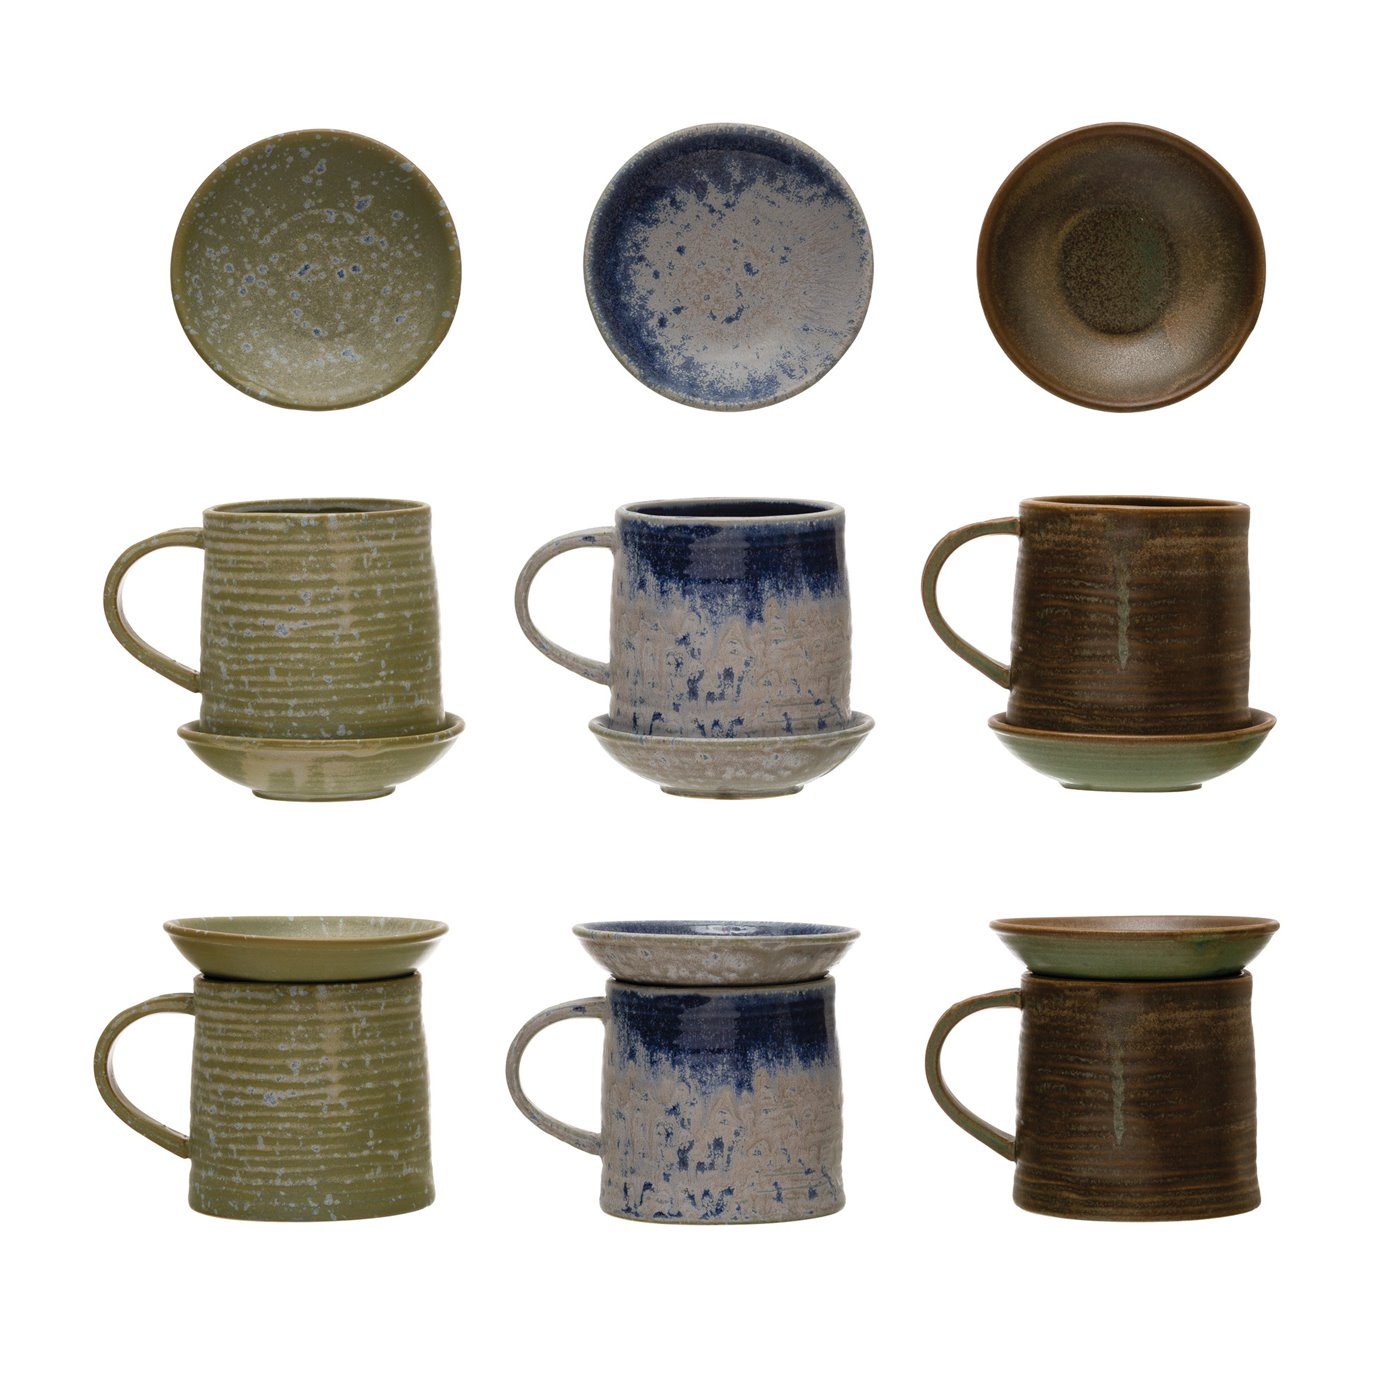 """12 oz. Stoneware Mug w/ 4-1/4"""" Round Snack Plate Topper, Reactive Glaze, Set of 2, 3 Colors (Each One Will Vary)"""